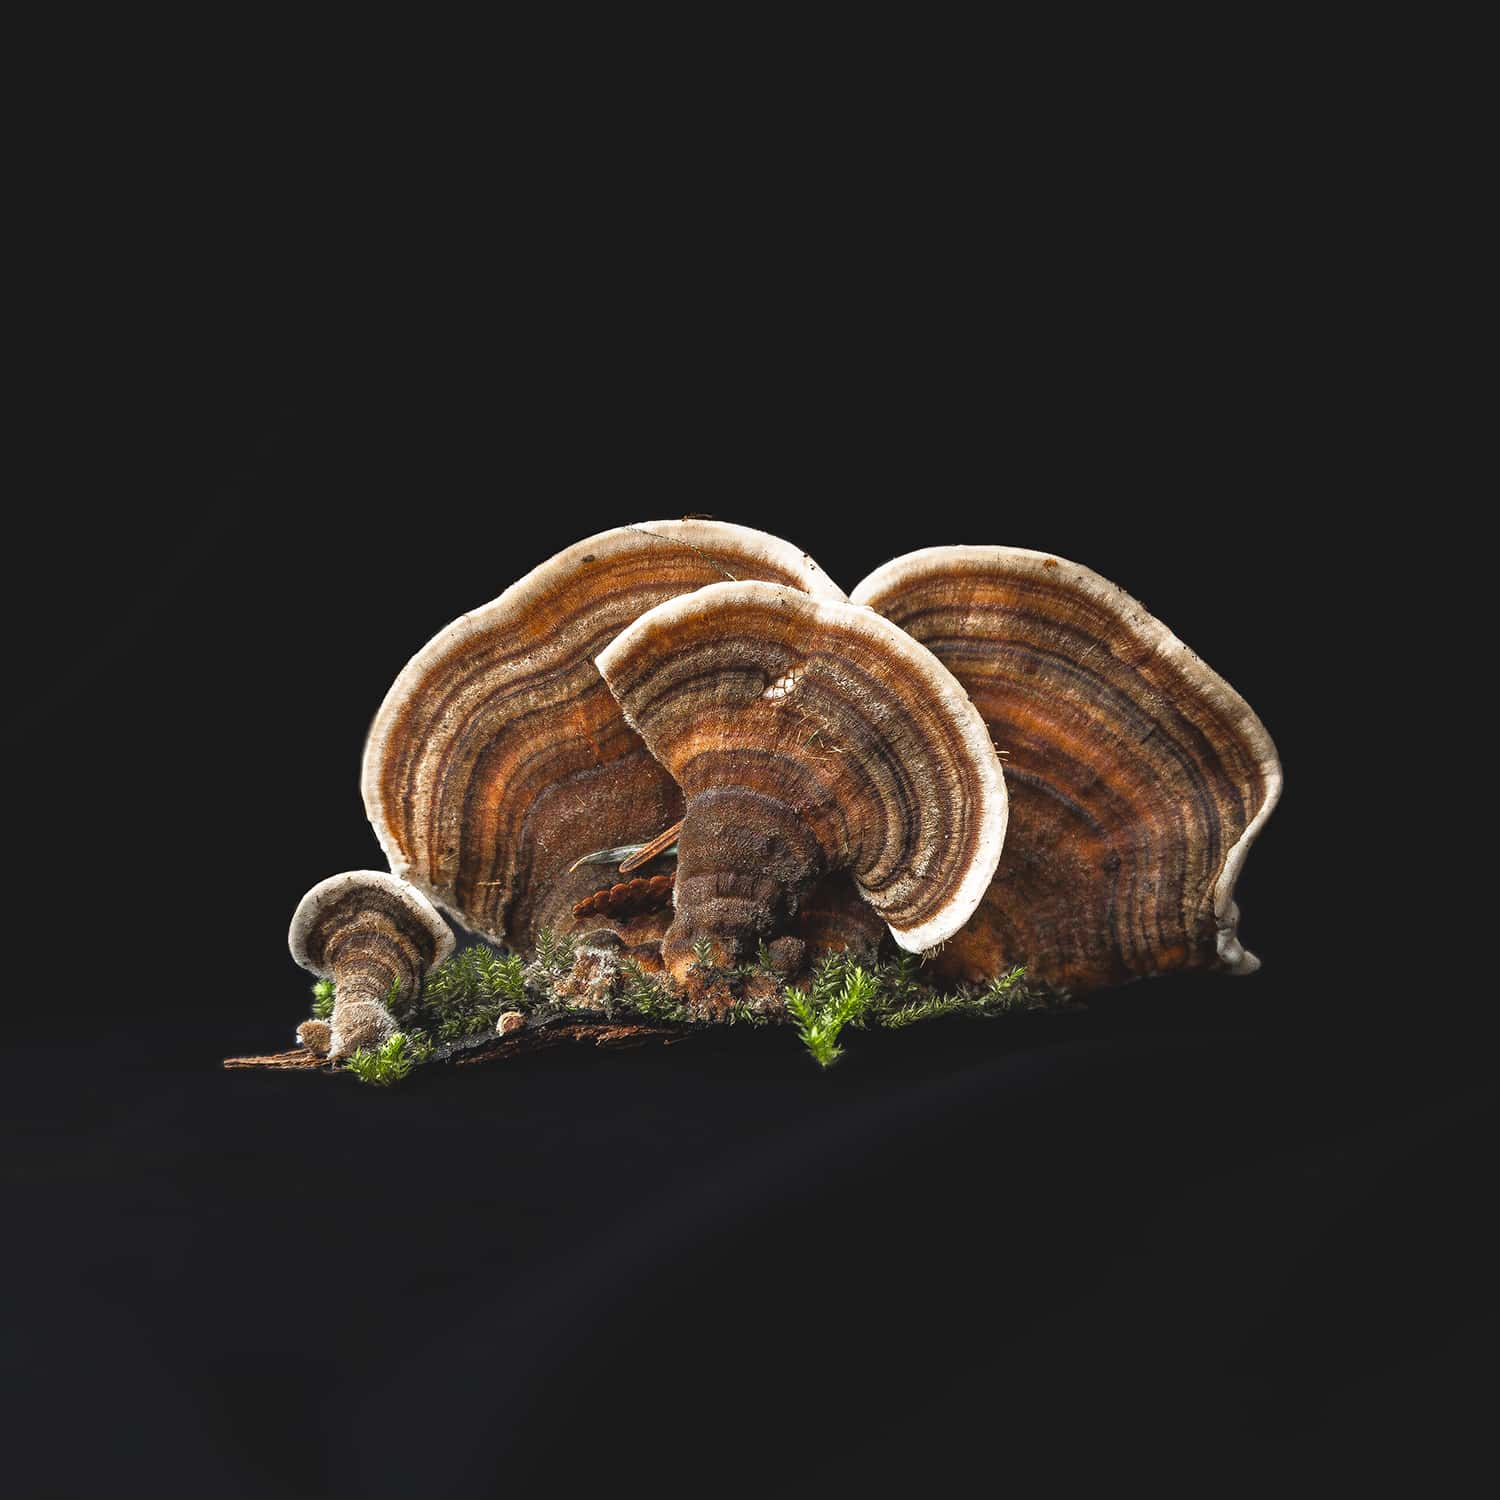 A Turkey Tail mushroom collected from Portland Oregon forest